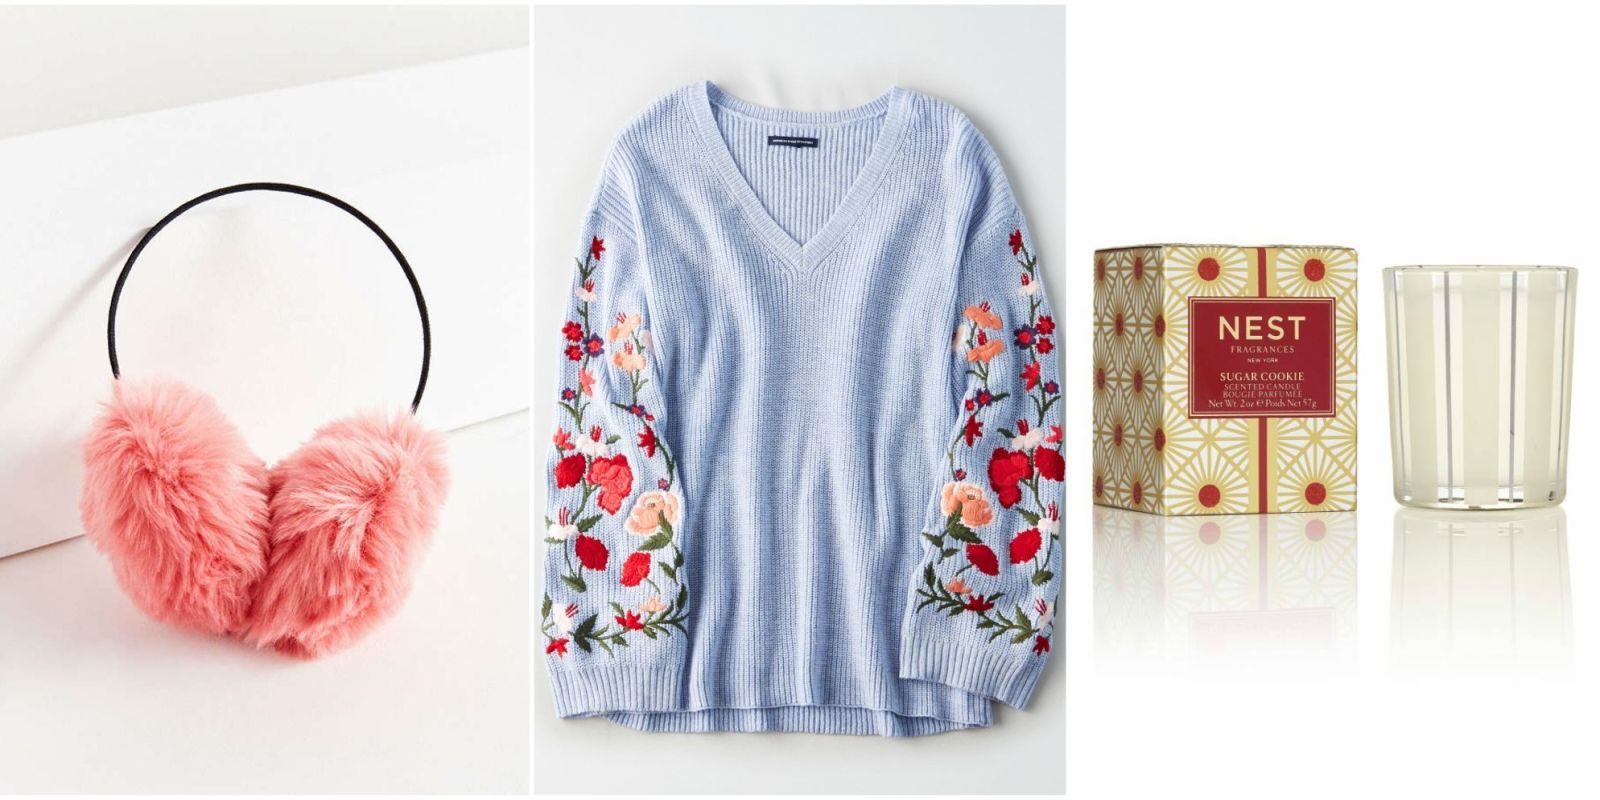 30+ Best Gift Ideas for Teens - Christmas Presents for Teenage Girls